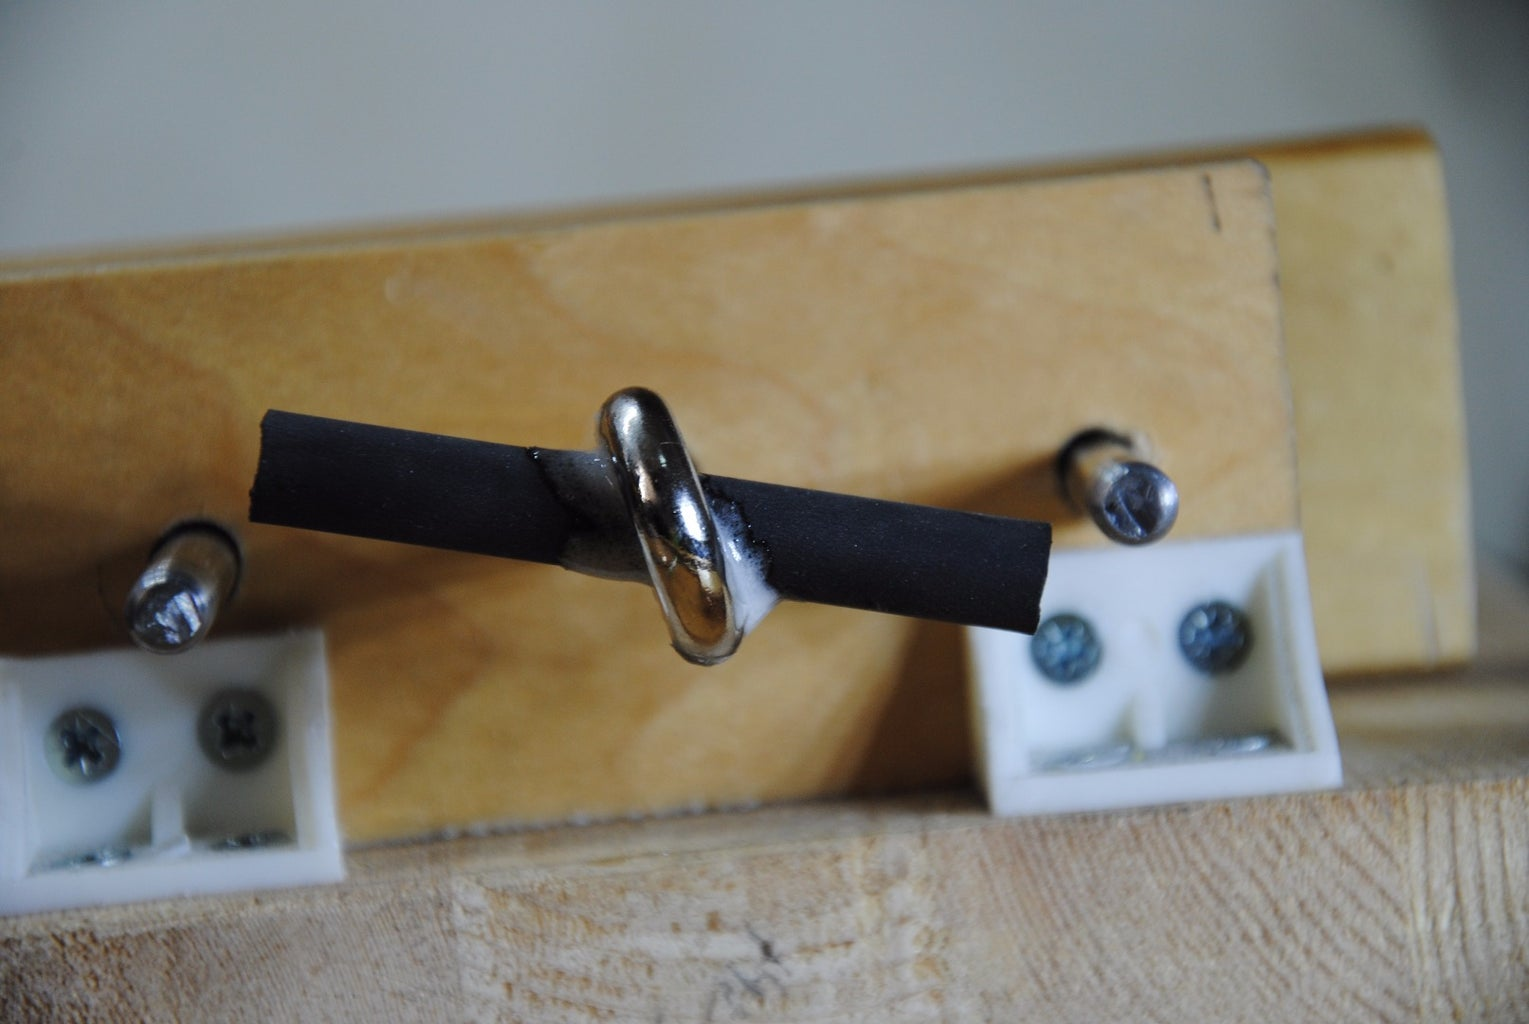 Cutting to Size & Attaching the Knob (Twist Handle)